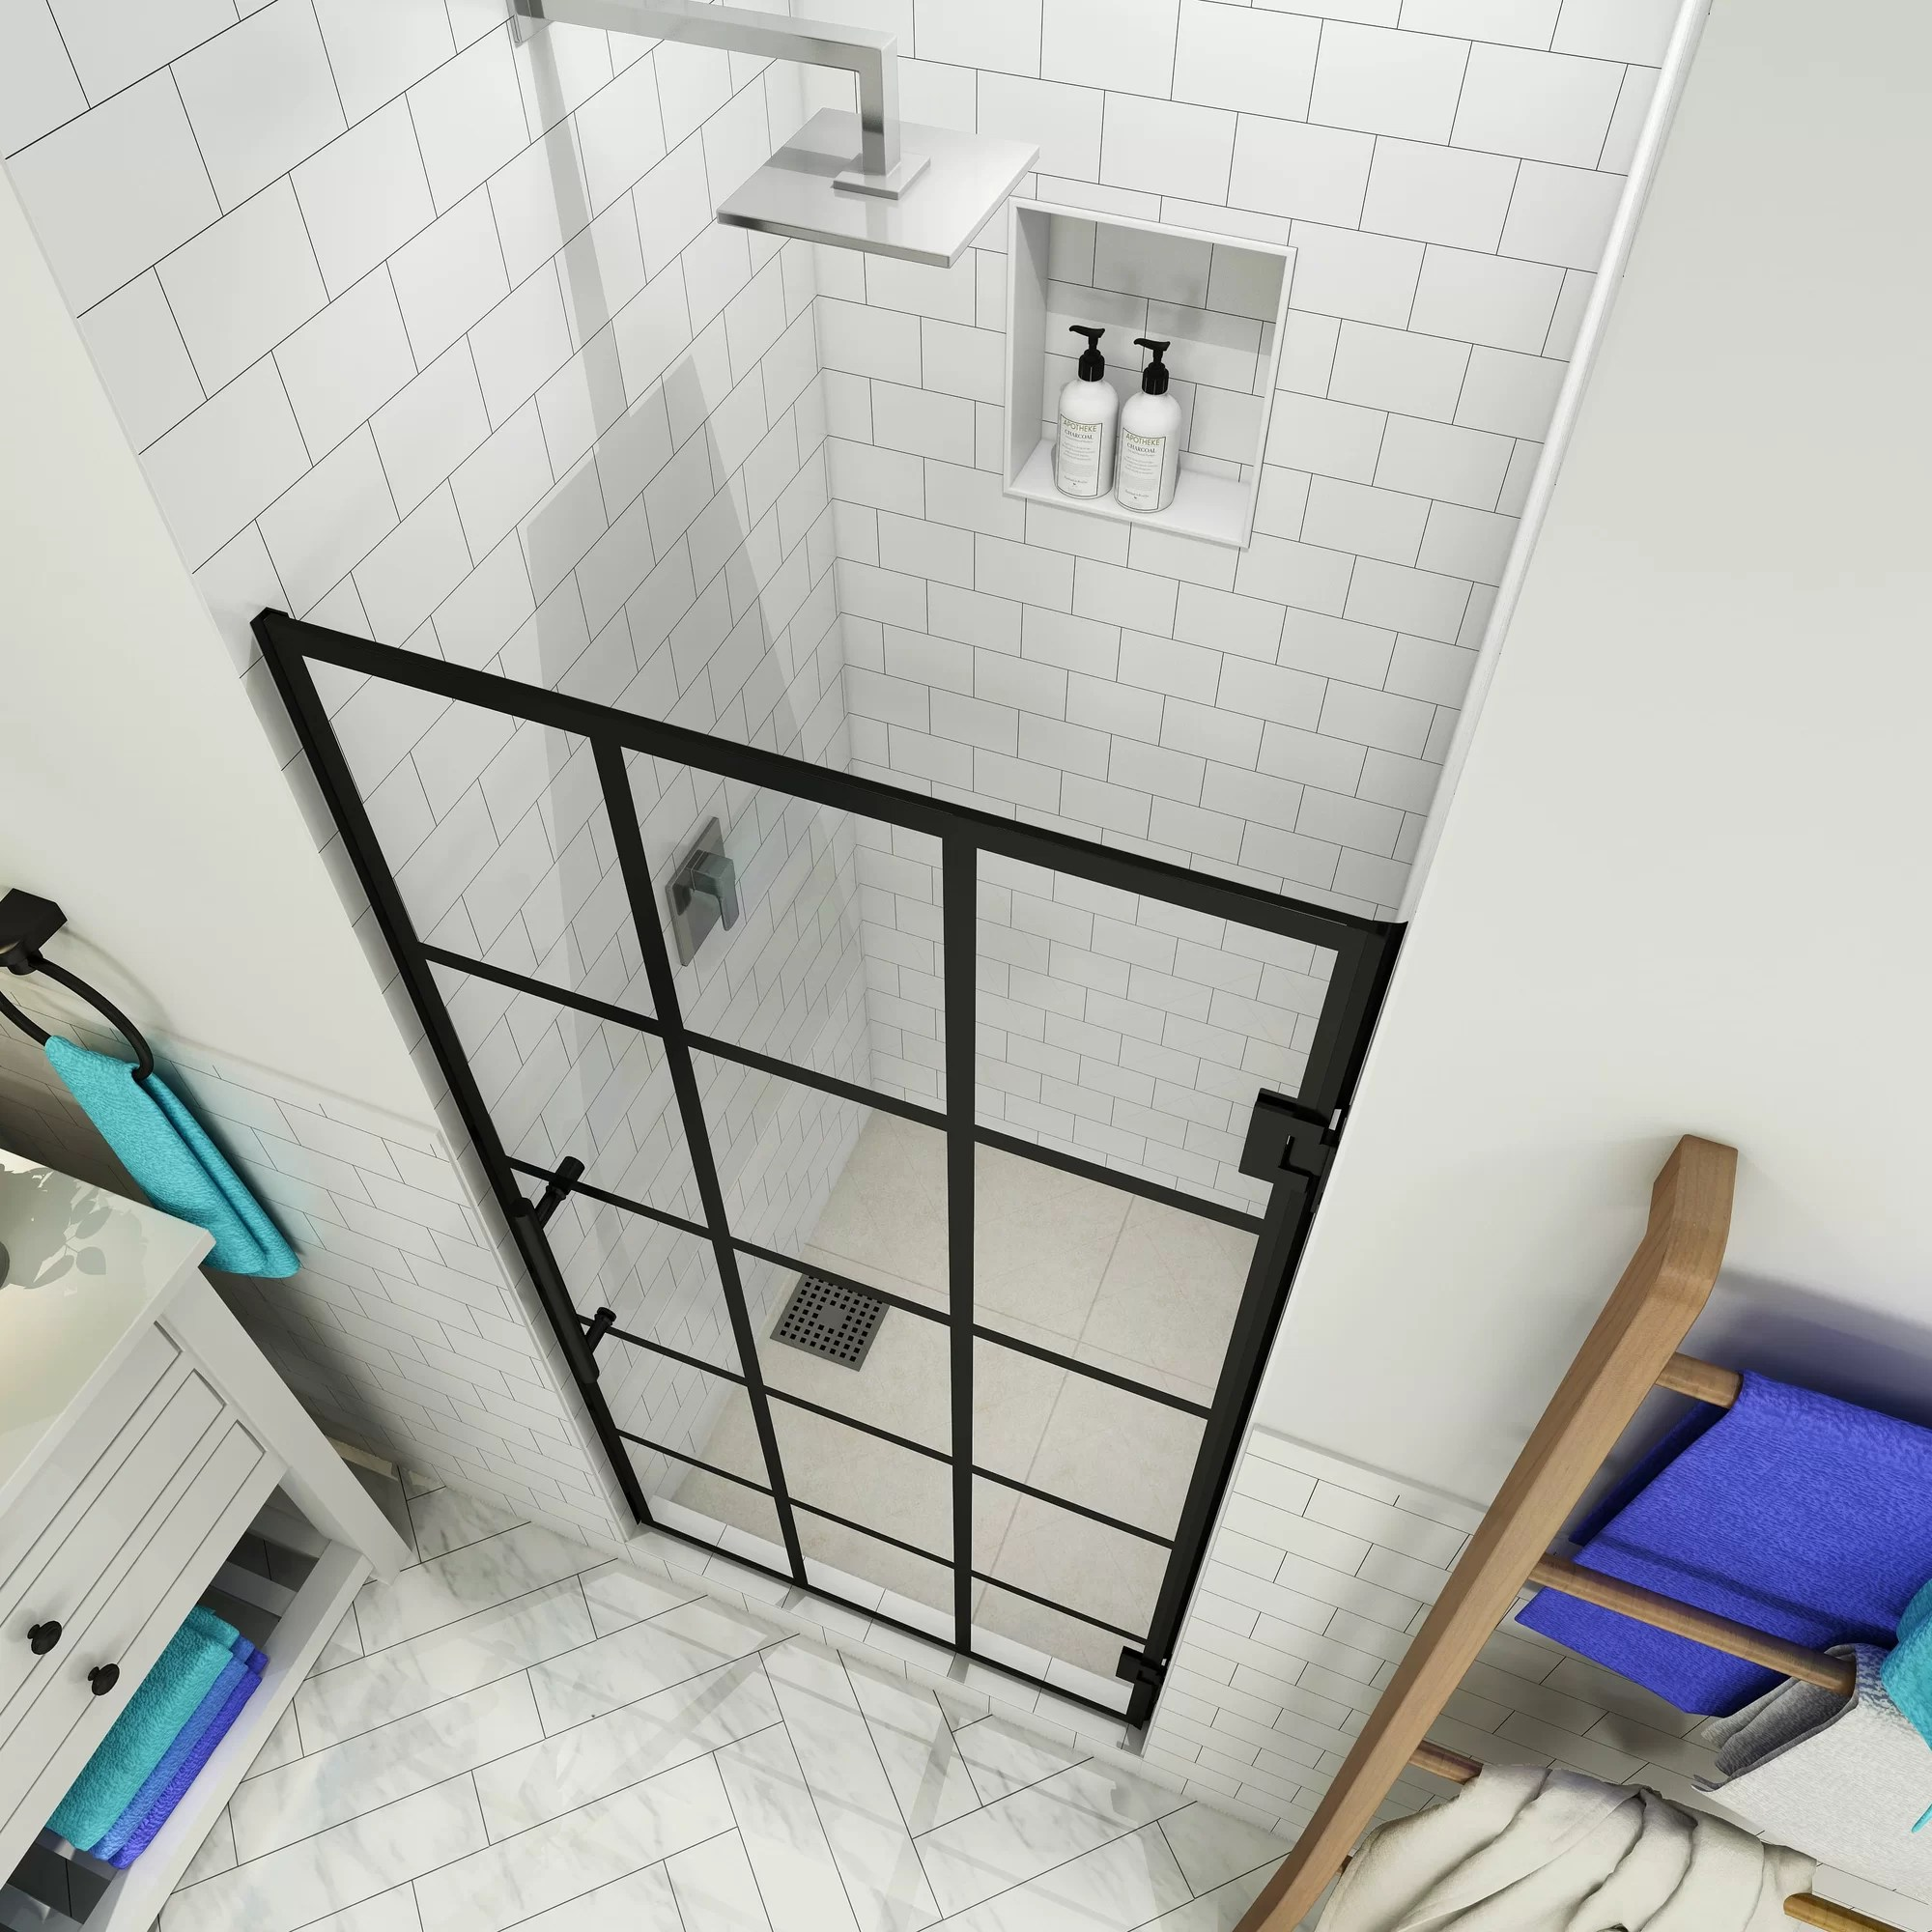 Details About Aston French Mayenne 24 X 72 Hinged Frameless Shower Door